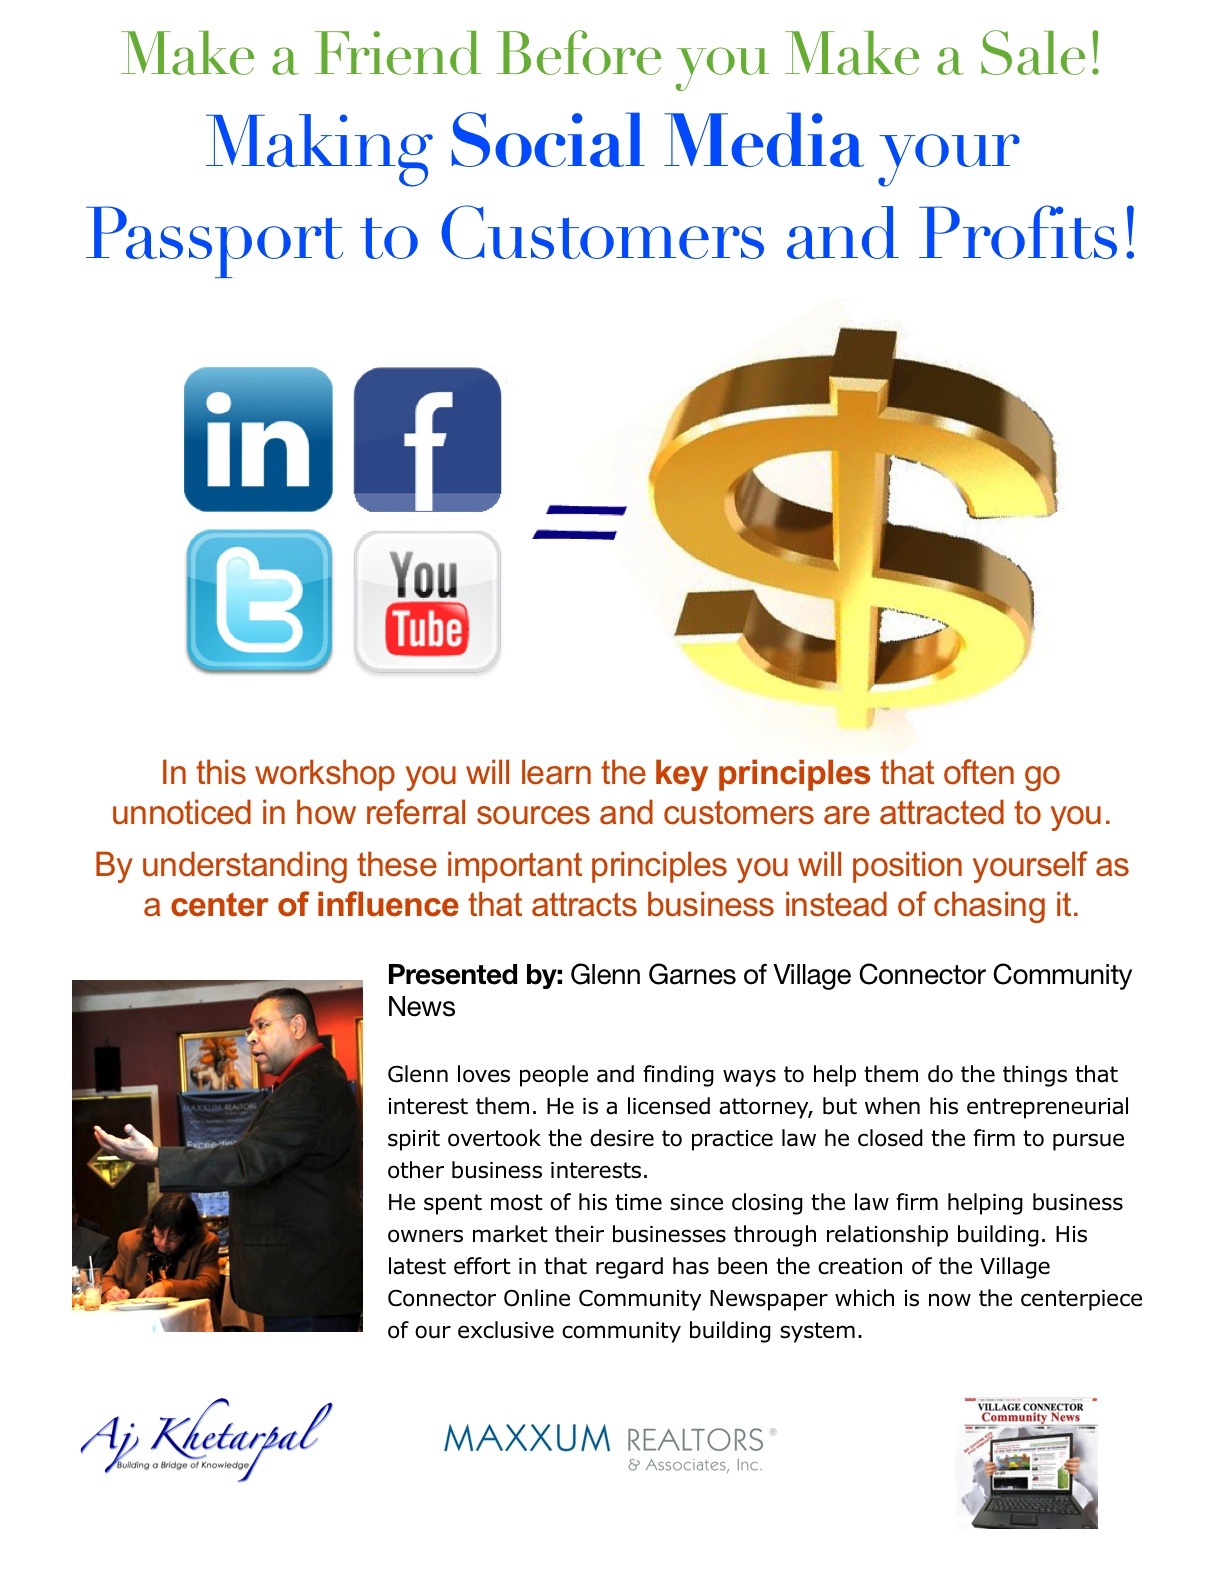 Make a Friend Before you Make a Sale! Making Social Media your Passport to Customers and Profits! In this workshop you will learn the key principles that often go unnoticed in how referral sources and customers are attracted to you.  By understanding these important principles you will position yourself as a center of influence that attracts business instead of chasing it.